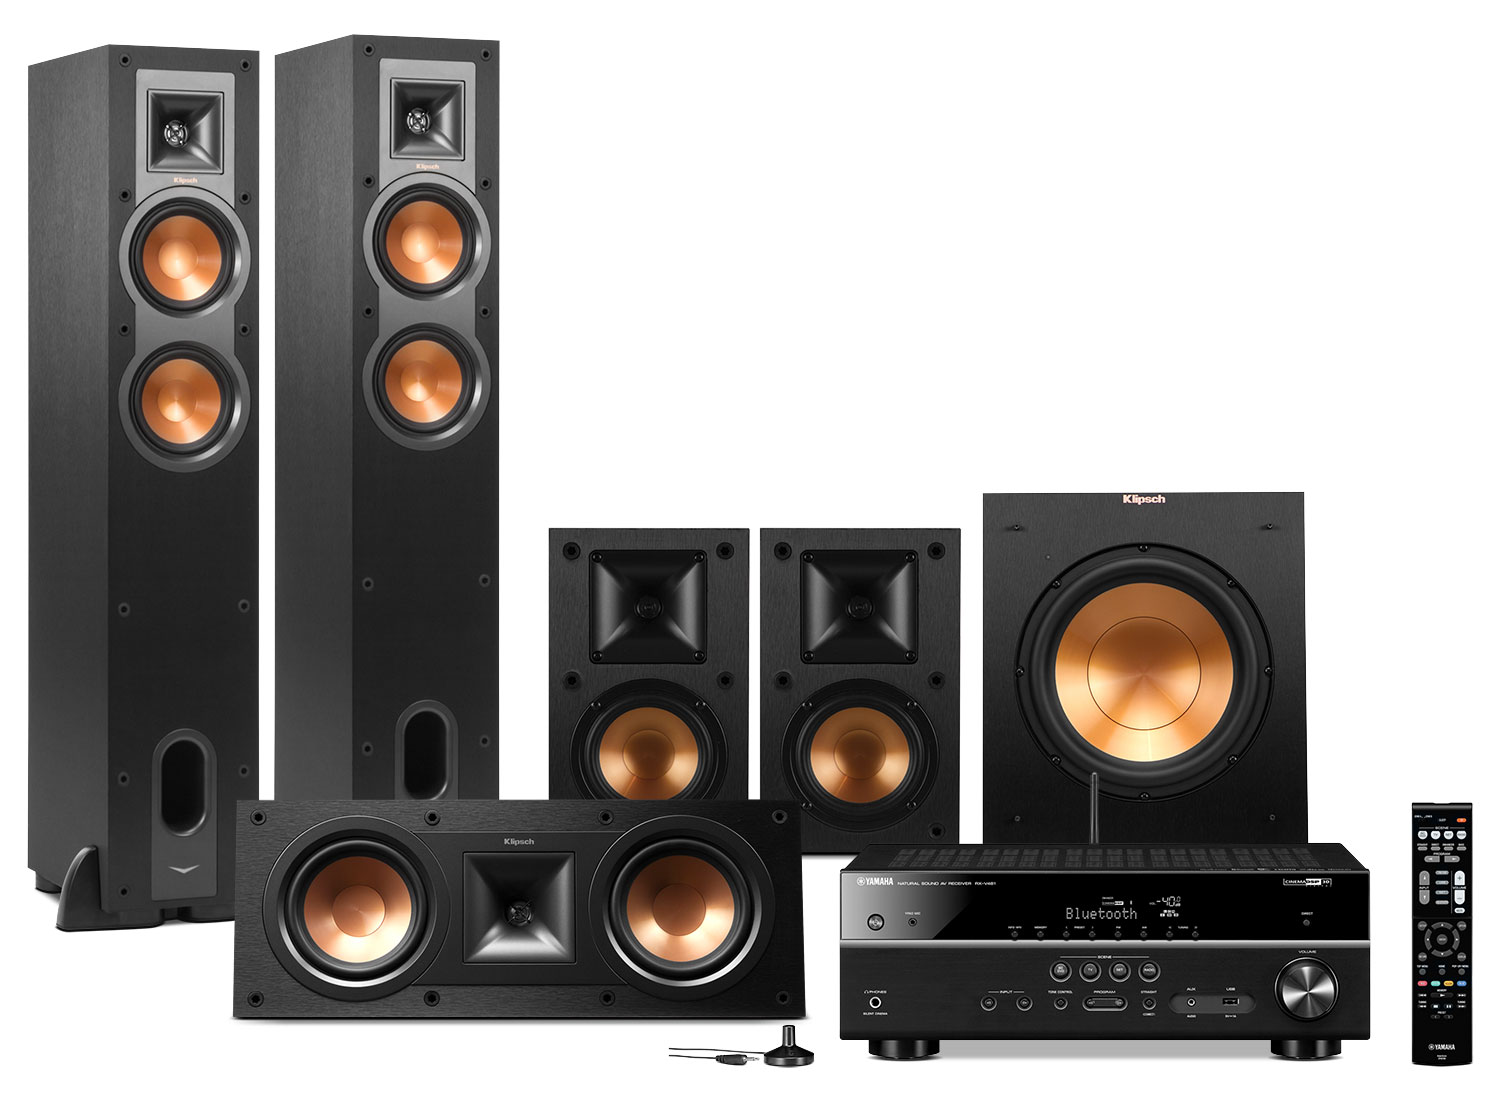 Yamaha RX-V481 Home Theatre Package with Klipsch Speakers